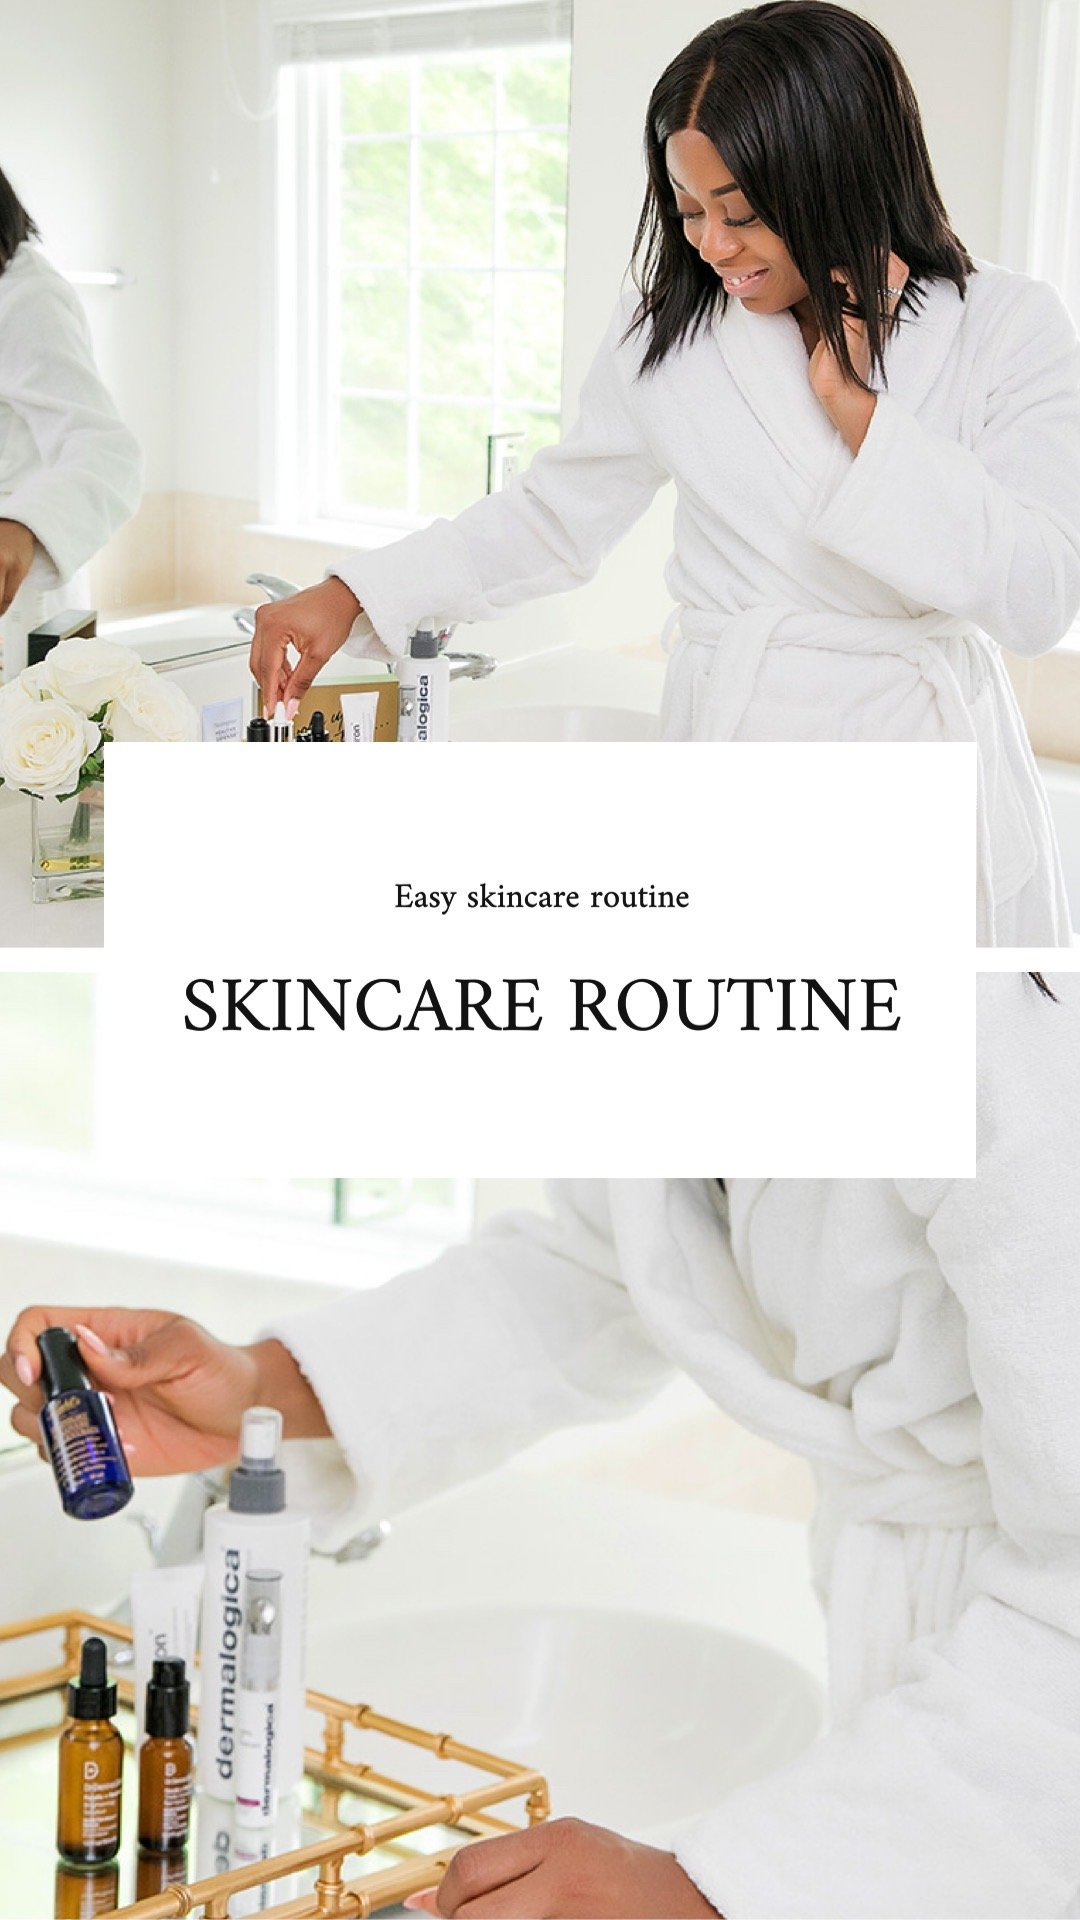 stella-adewunmi-of-jadore-fashion-blog-shares-easy-morning-skincare-routine